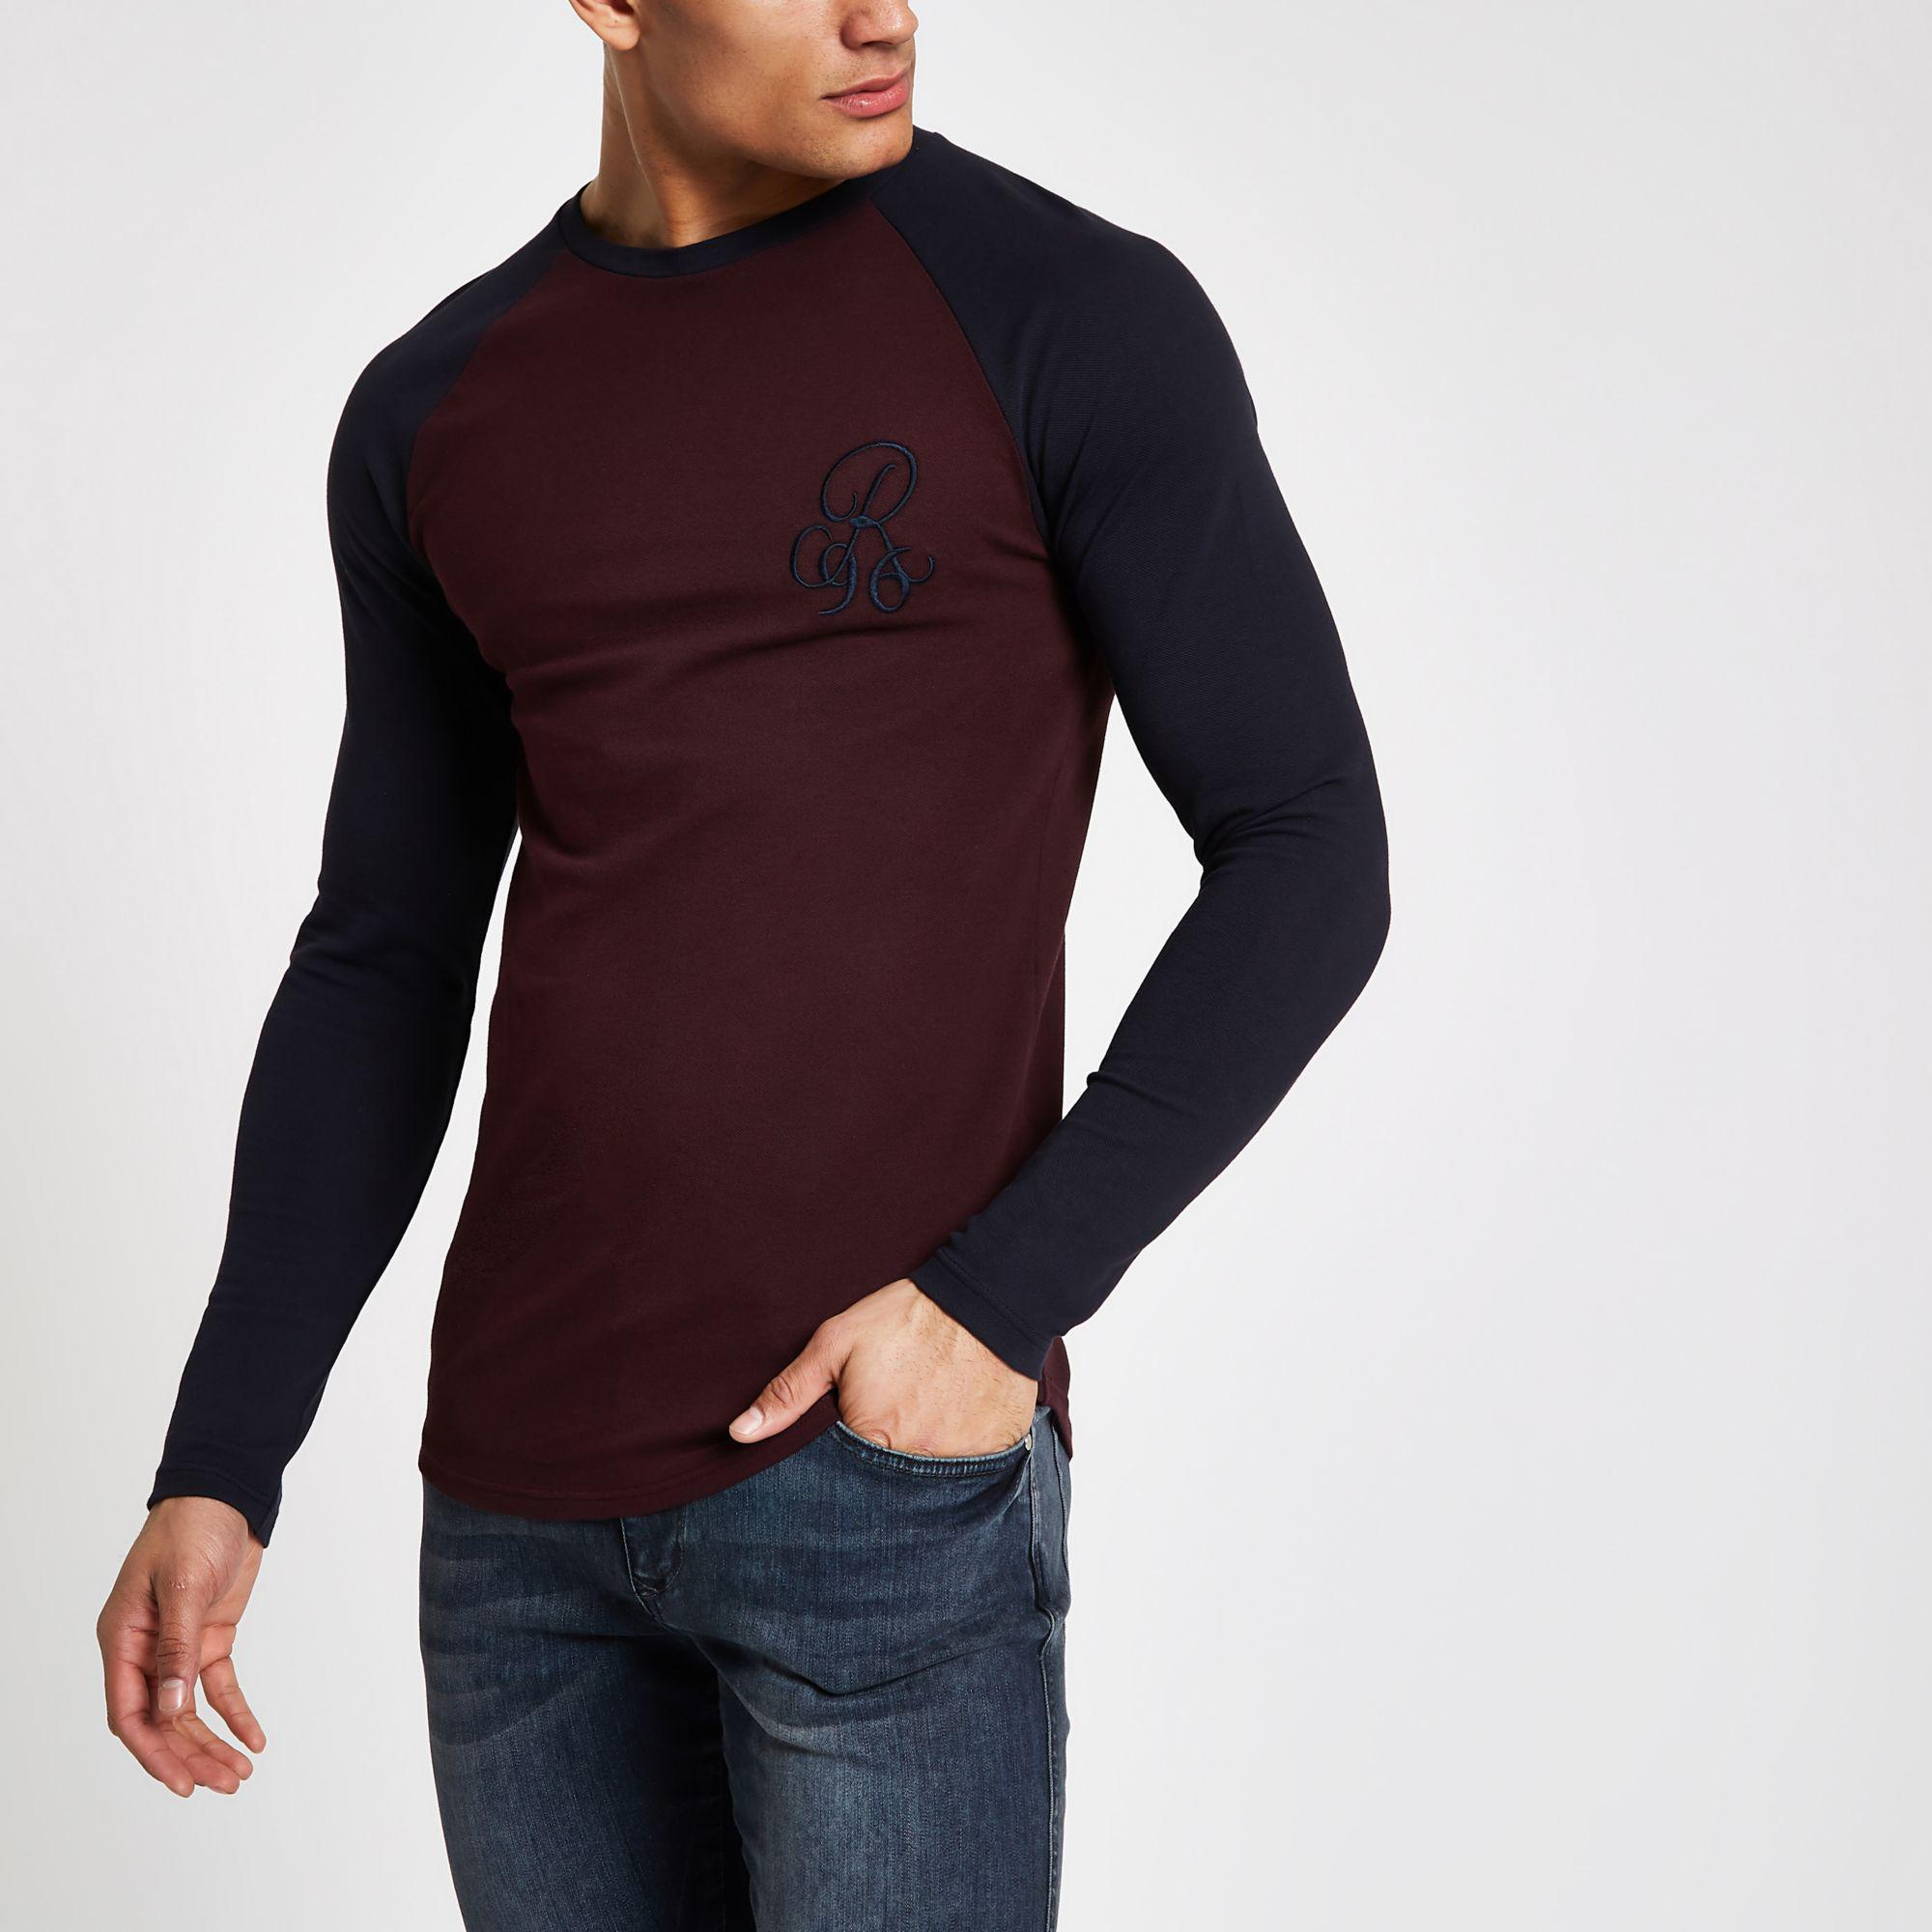 06636ee47541 River Island Dark Red R96 Muscle Fit Long Sleeve T-shirt in Red for ...